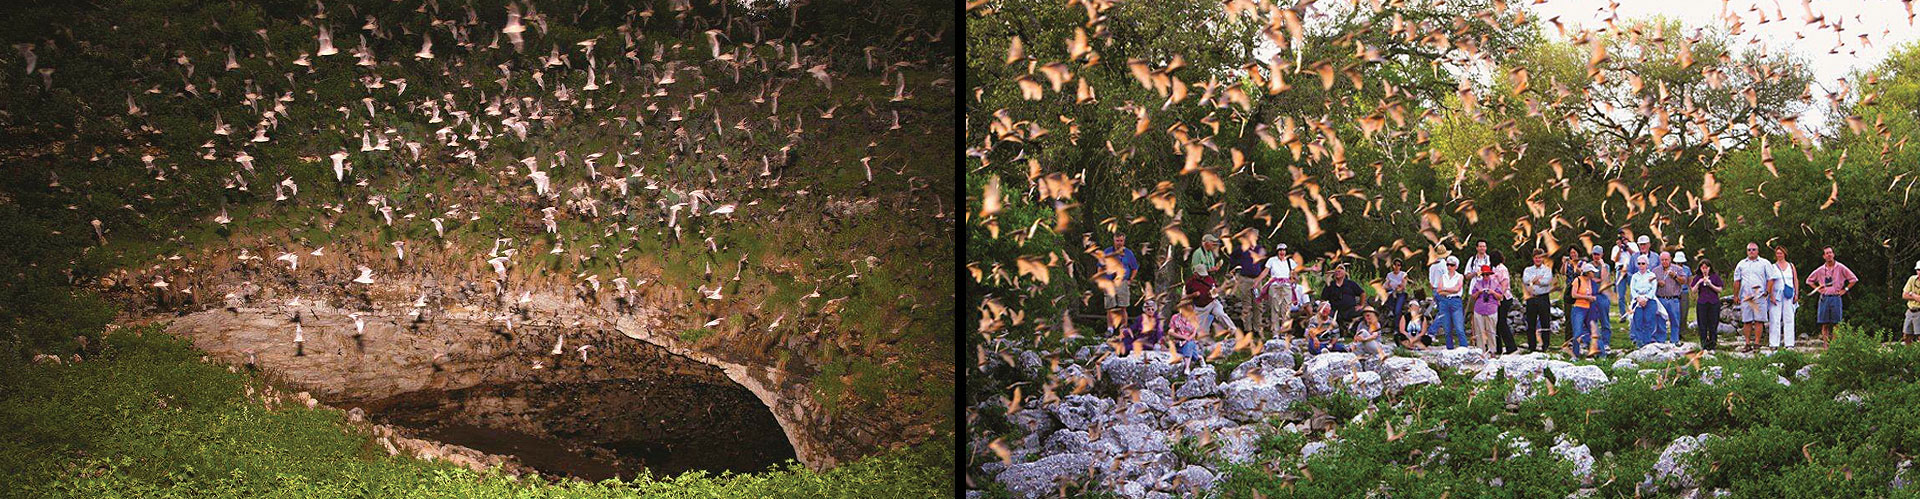 Colony of Bats Exiting Cave